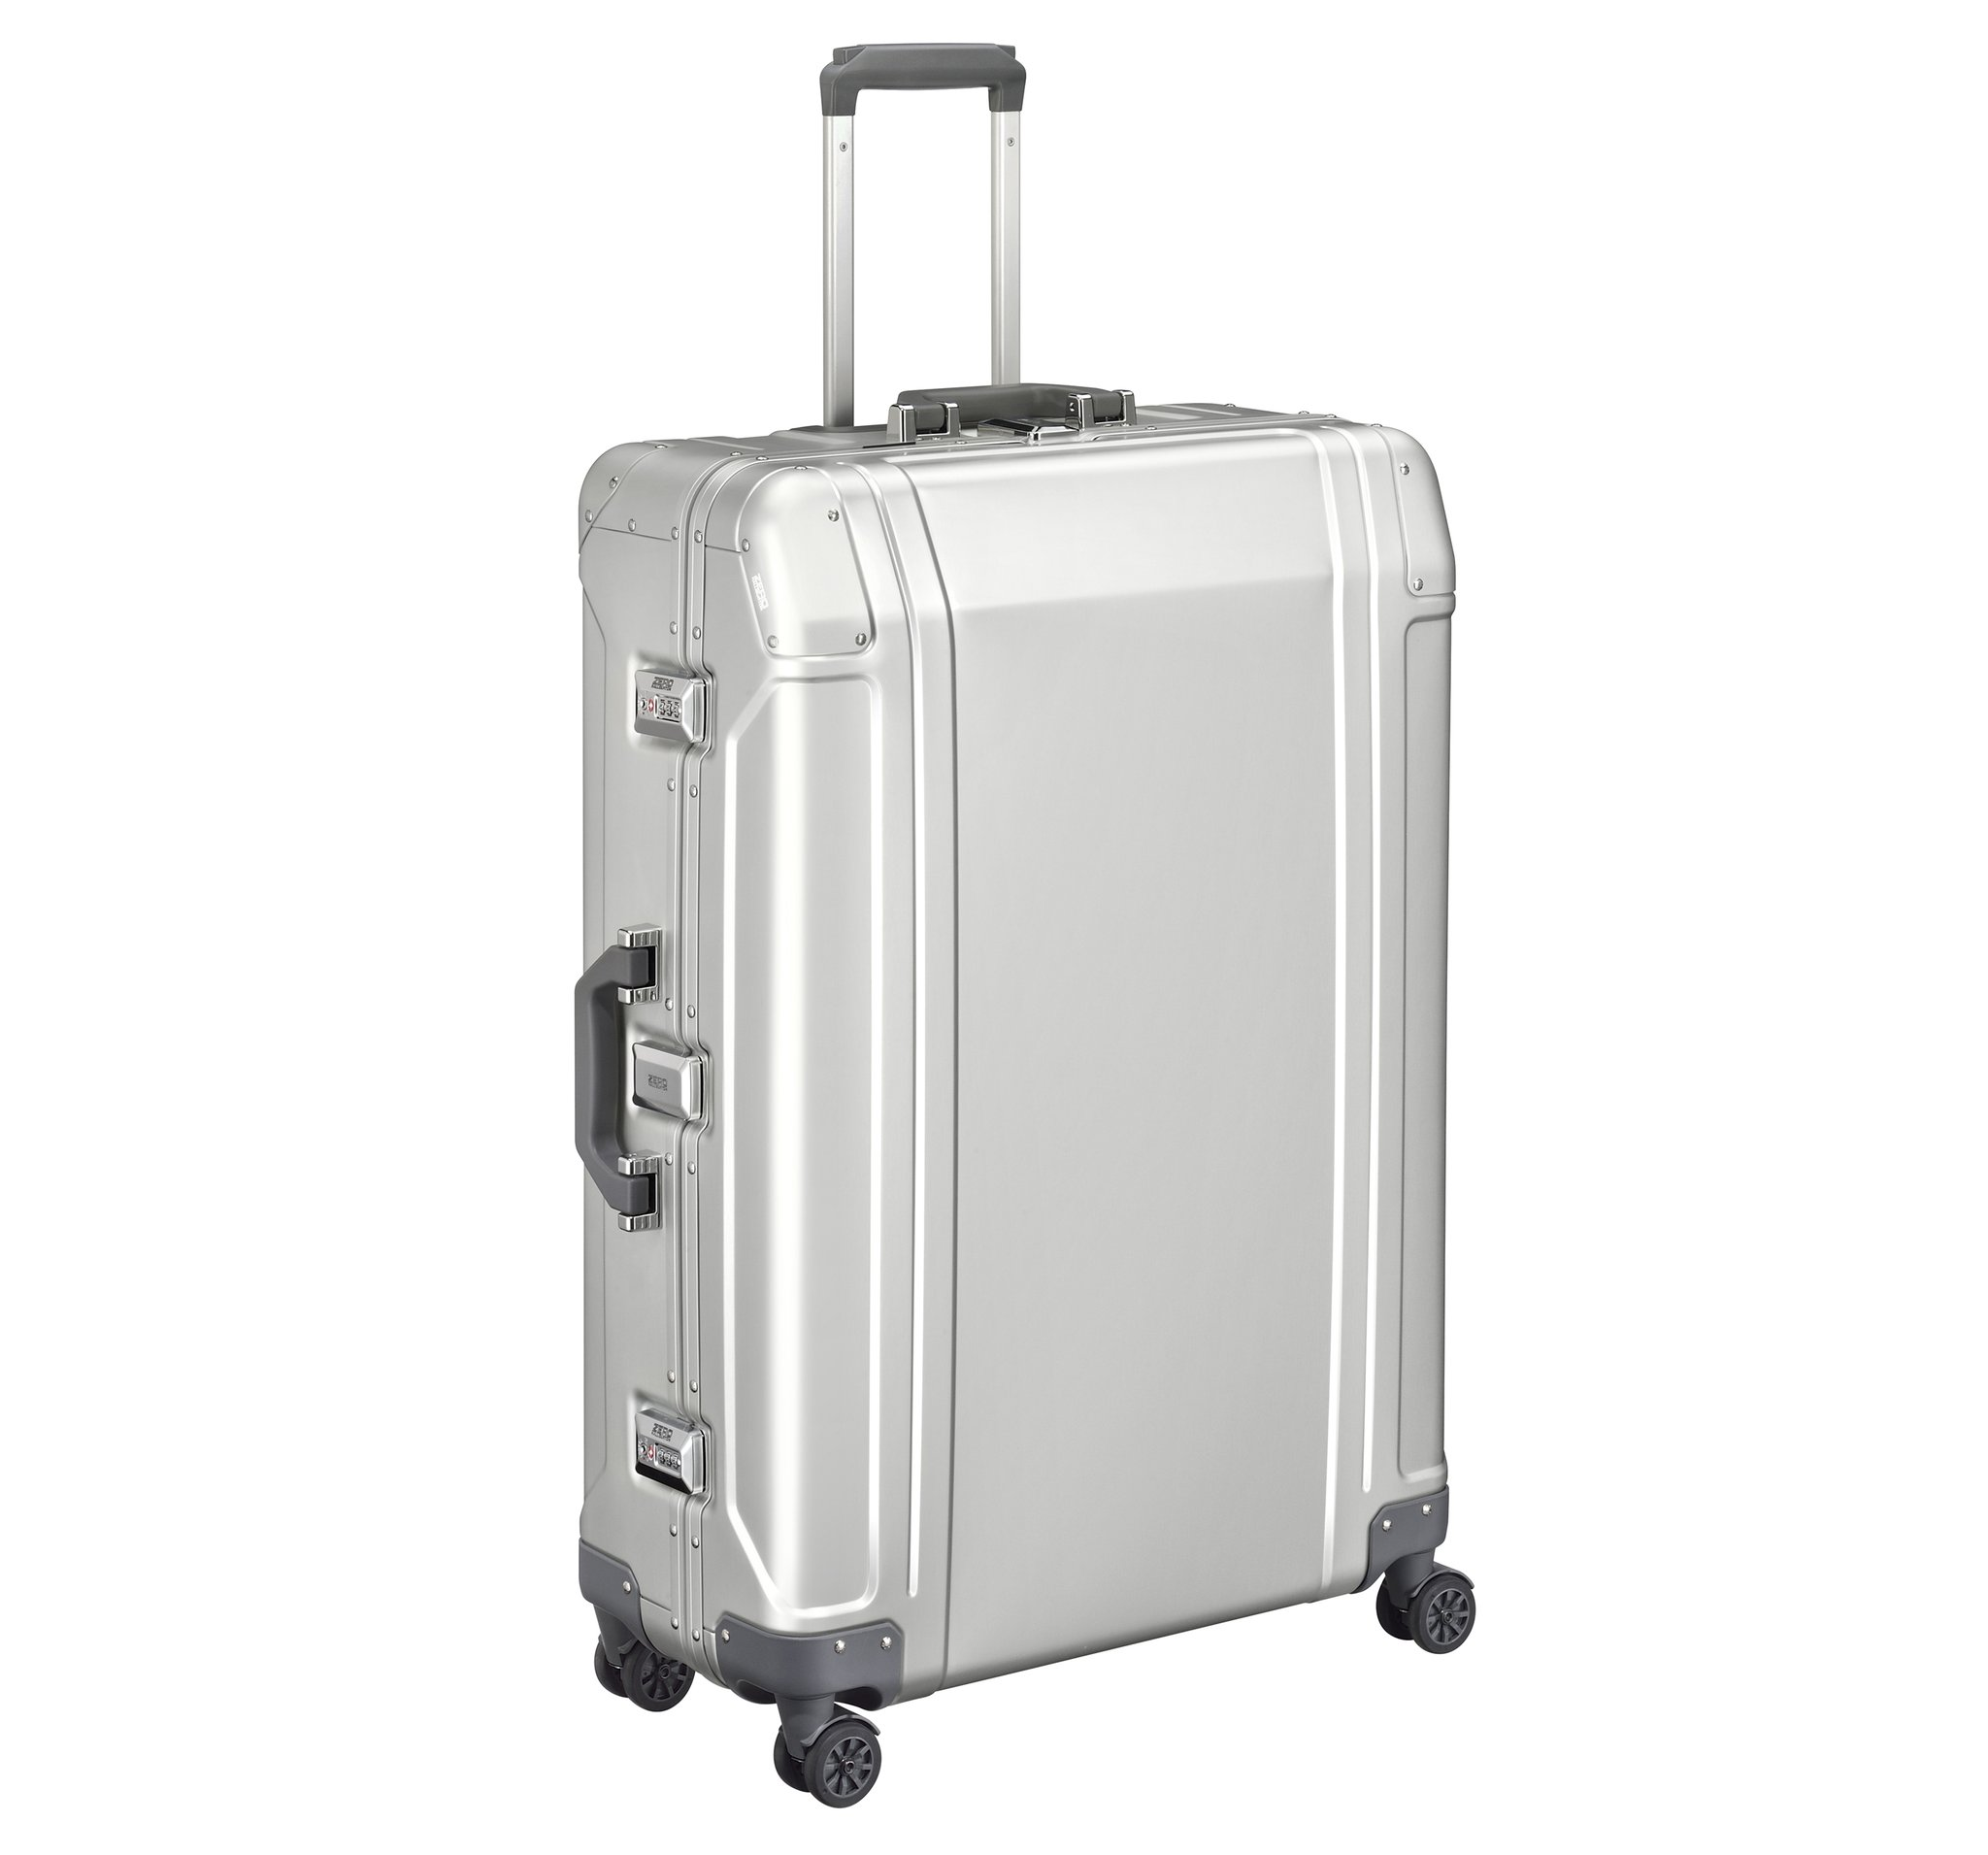 "Geo Aluminum 3.0 - 30"" 4-Wheel Spinner Travel Case by Zero Halliburton (Color: Silver)"